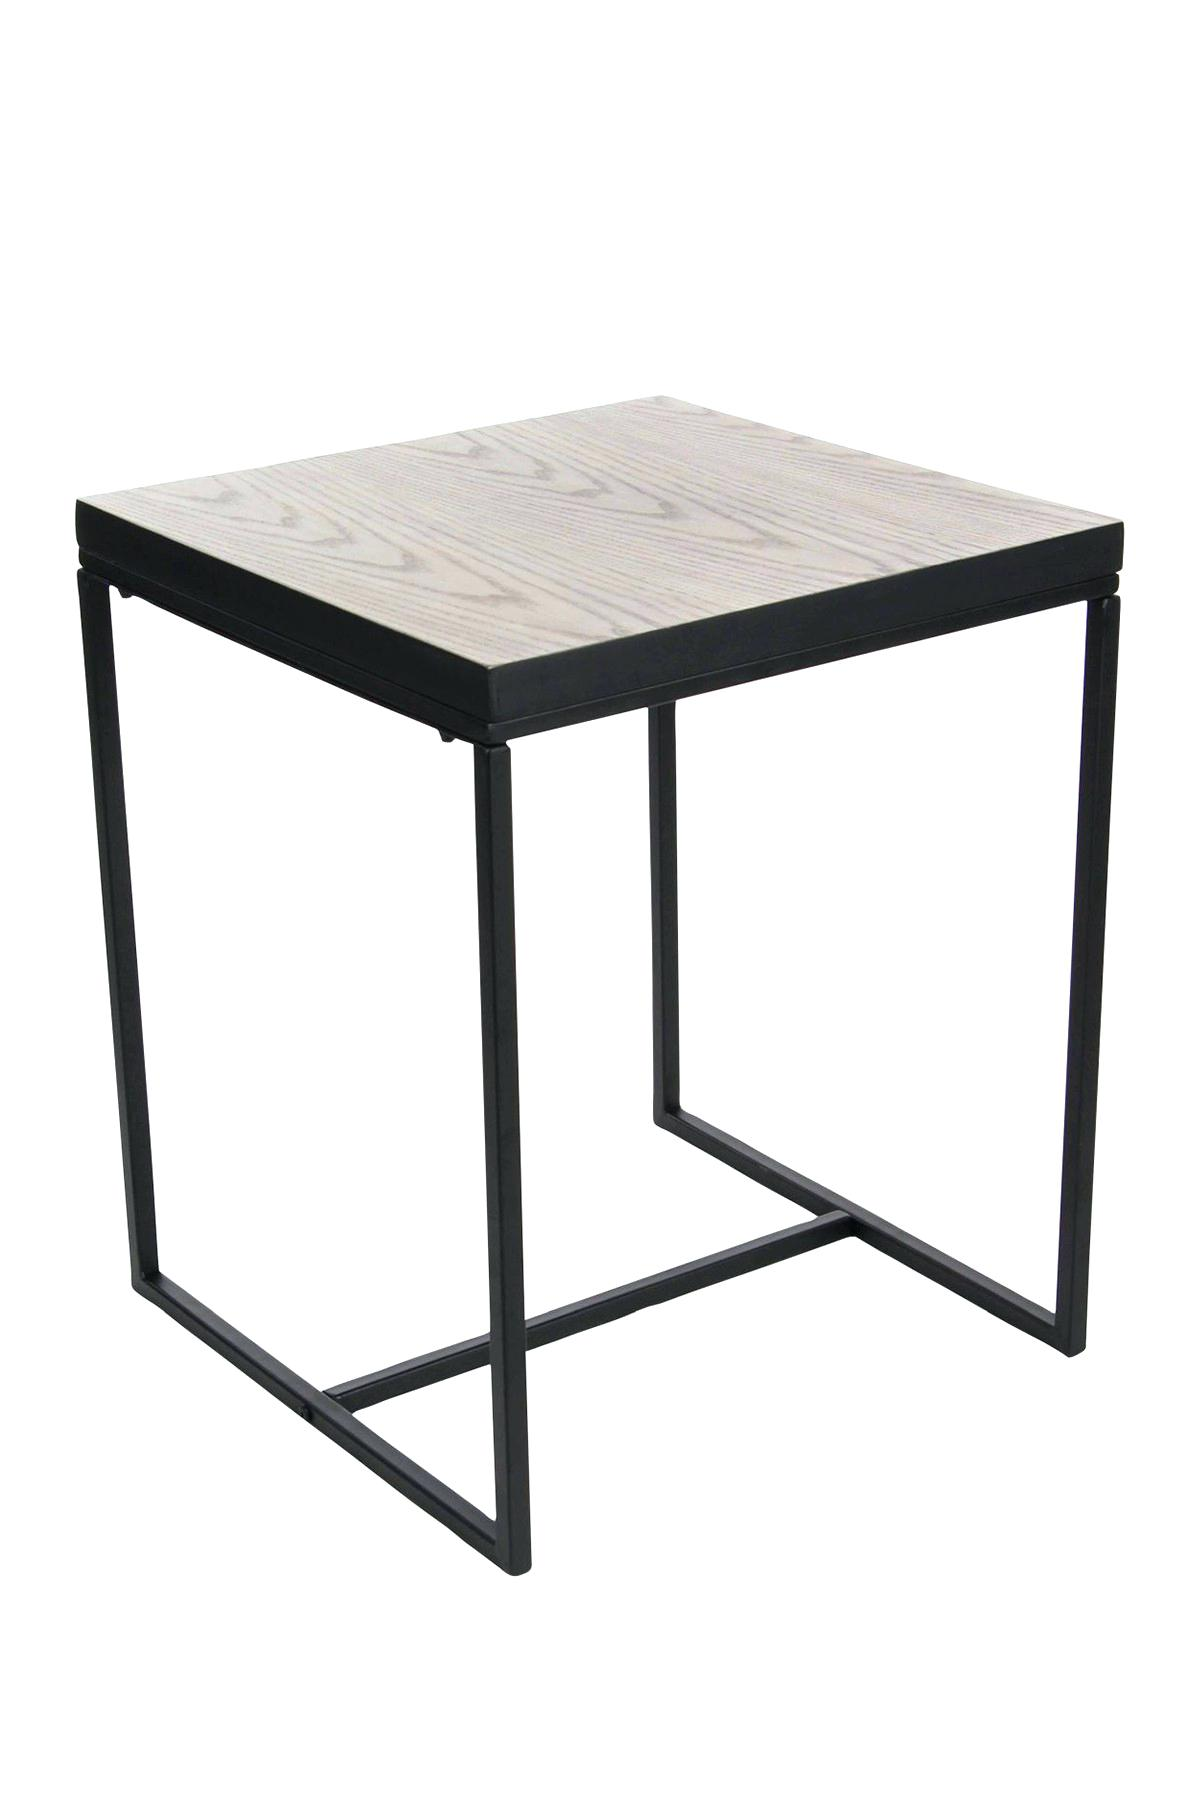 metal and wood accent table threshold round top chrisroland info brown black tall dining room sets resin furniture best trestle tables mid century modern kitchen patio seat covers